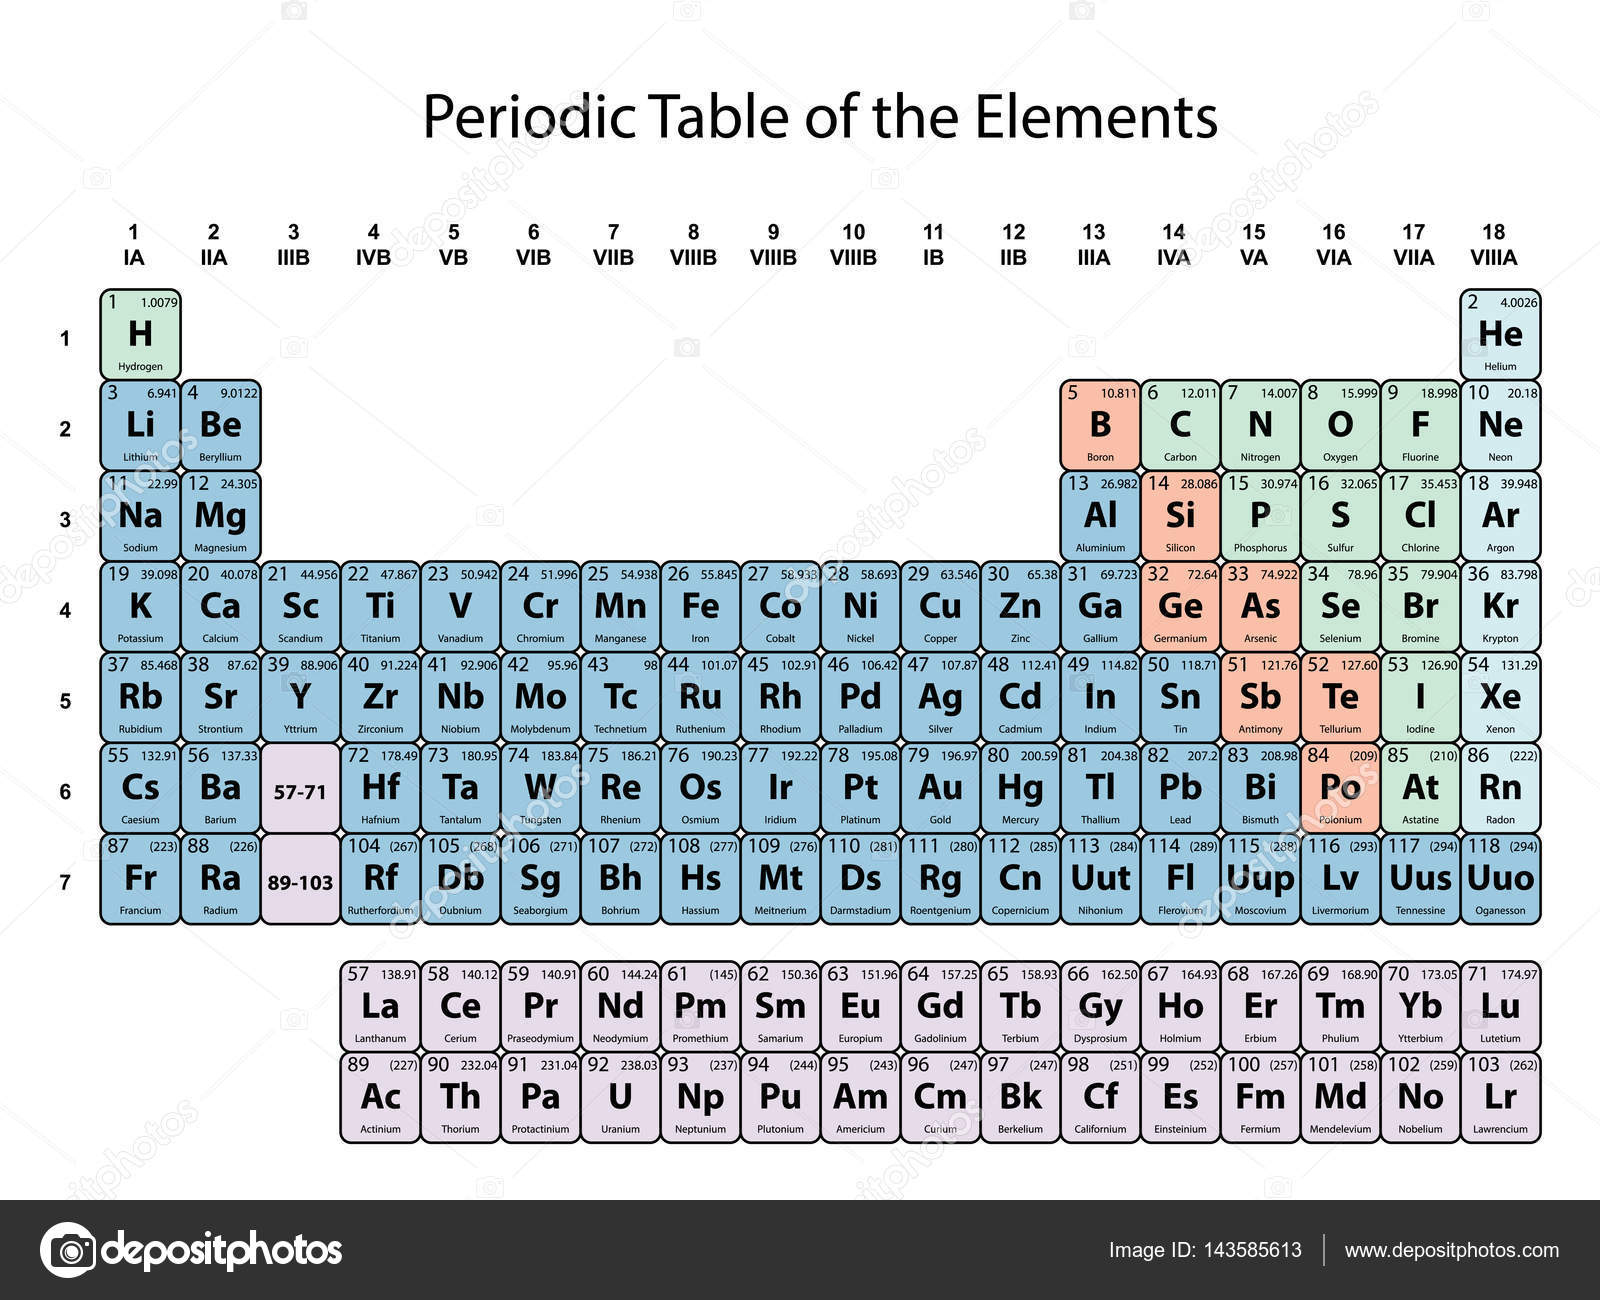 Periodic table of the elements with atomic number symbol and weight periodic table of the elements with atomic number symbol and weight with color delimitation on urtaz Choice Image